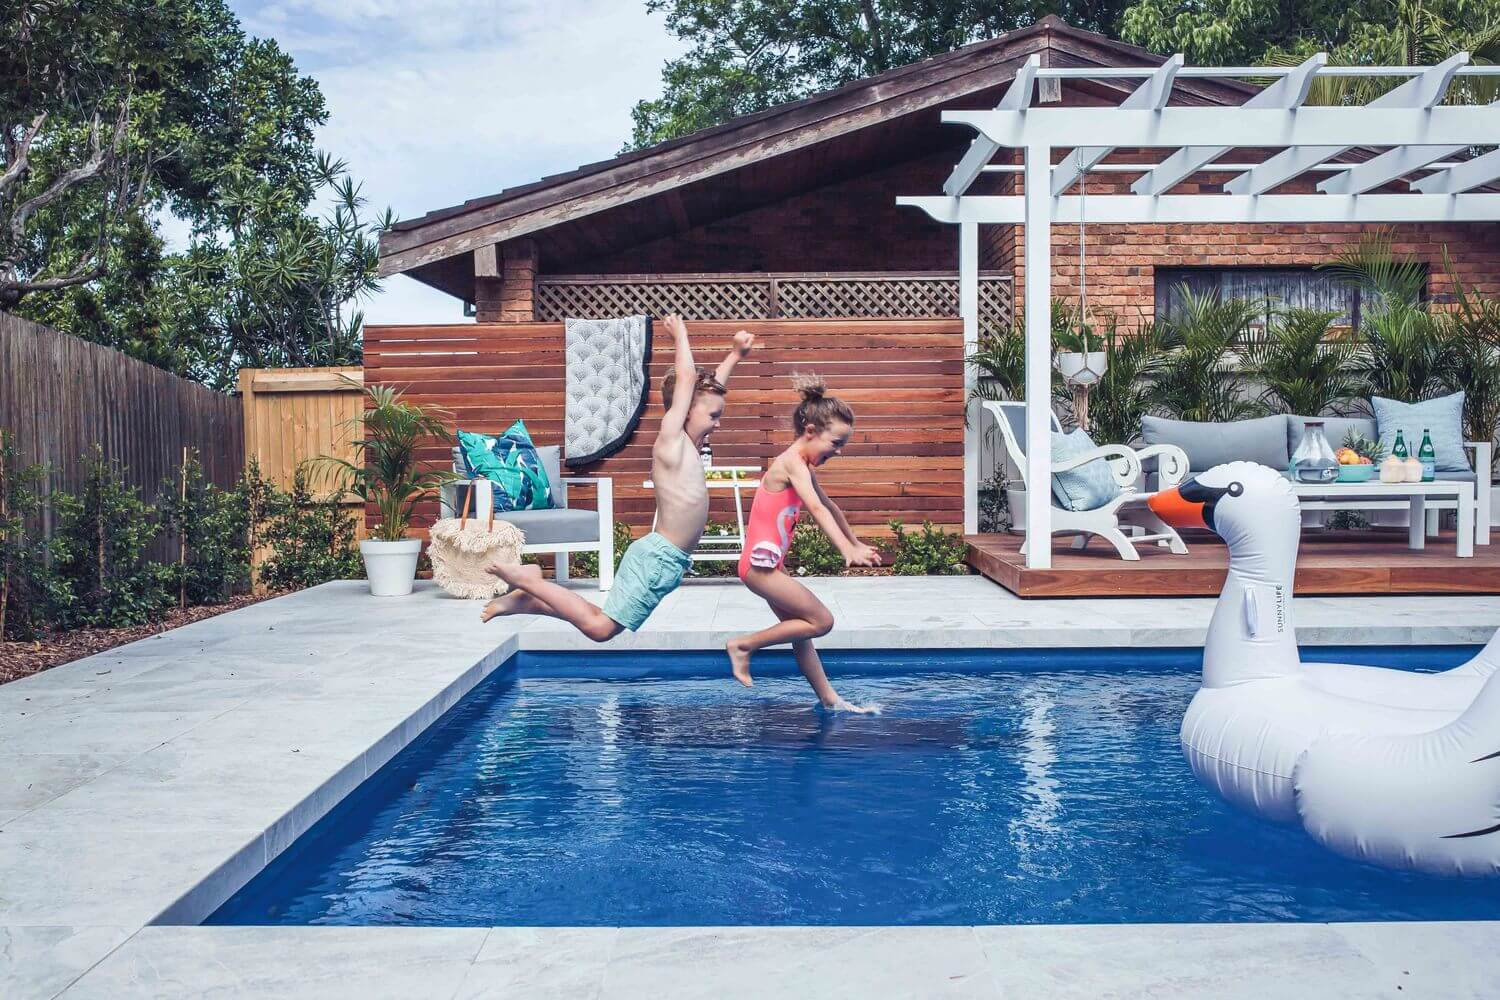 Compass Pools Sydney The pool that changes my life Kids jumping into the pool